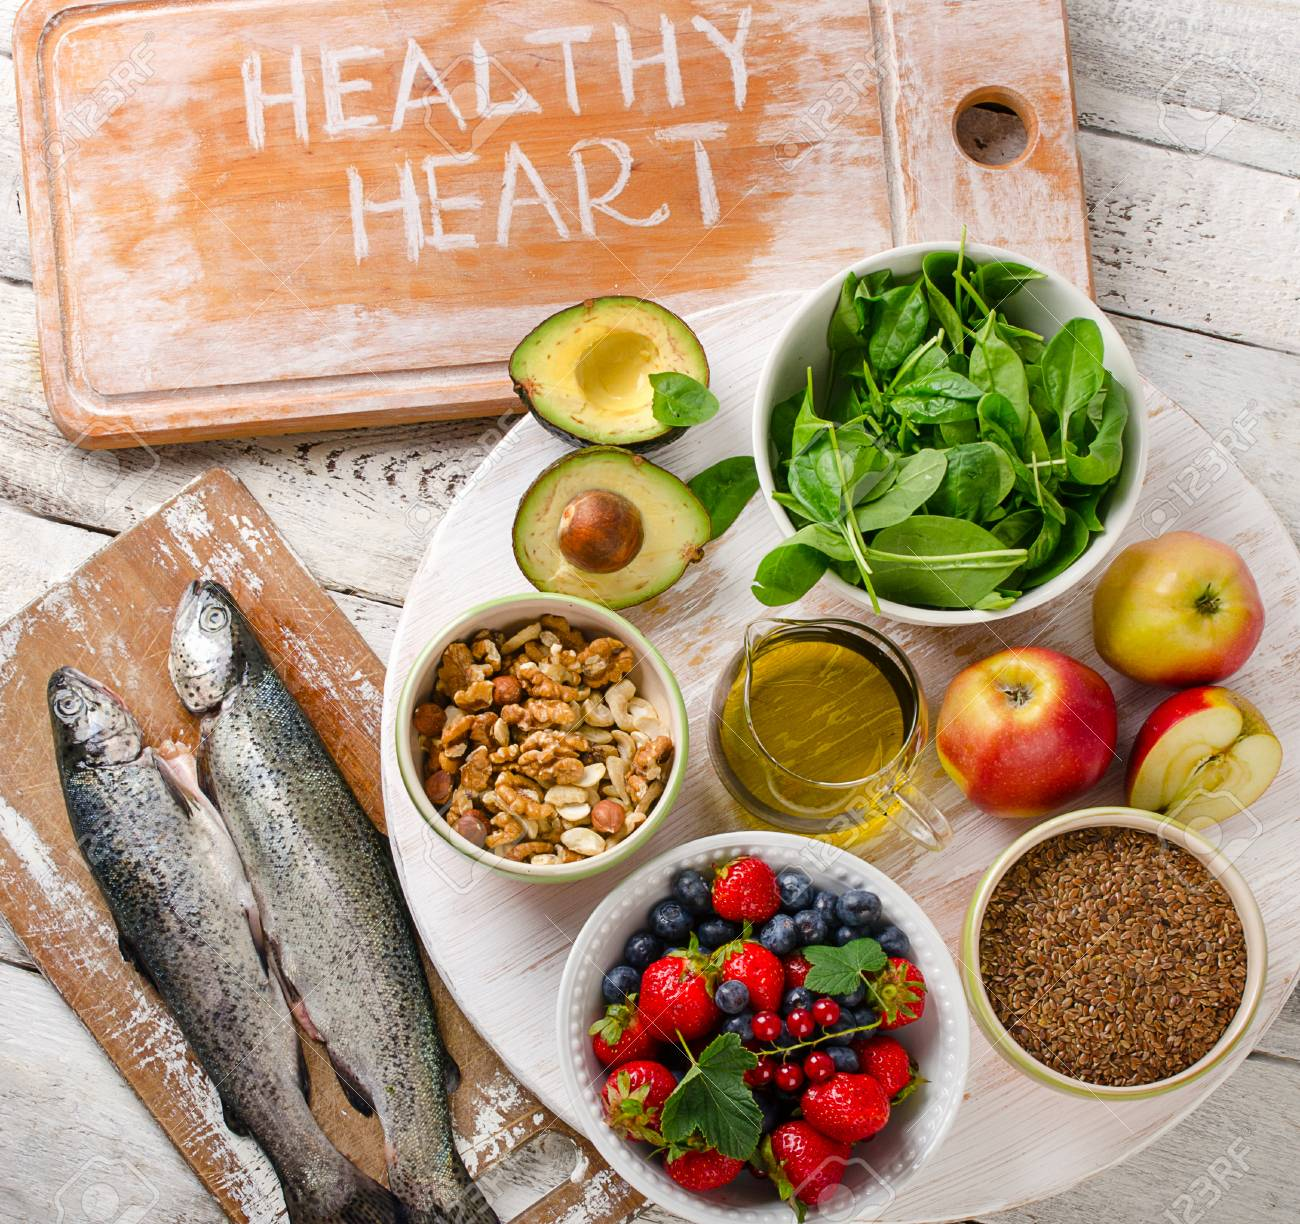 Best Food For Healthy Heart Heart Healthy Diet Top View Stock Photo Picture And Royalty Free Image Image 60240393